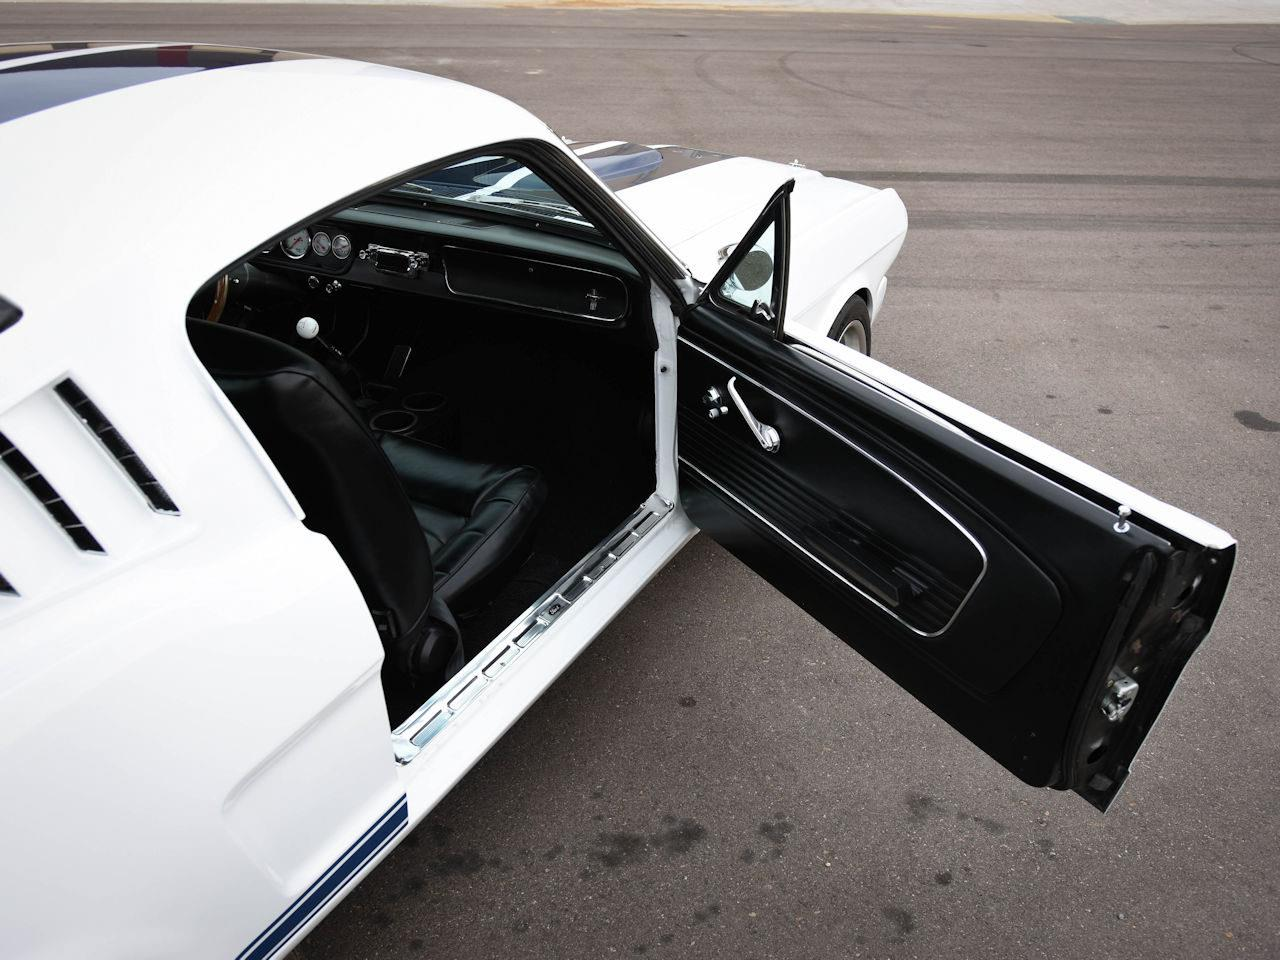 Large Picture of Classic '65 Ford Mustang located in O'Fallon Illinois - $49,995.00 Offered by Gateway Classic Cars - Denver - MOAC